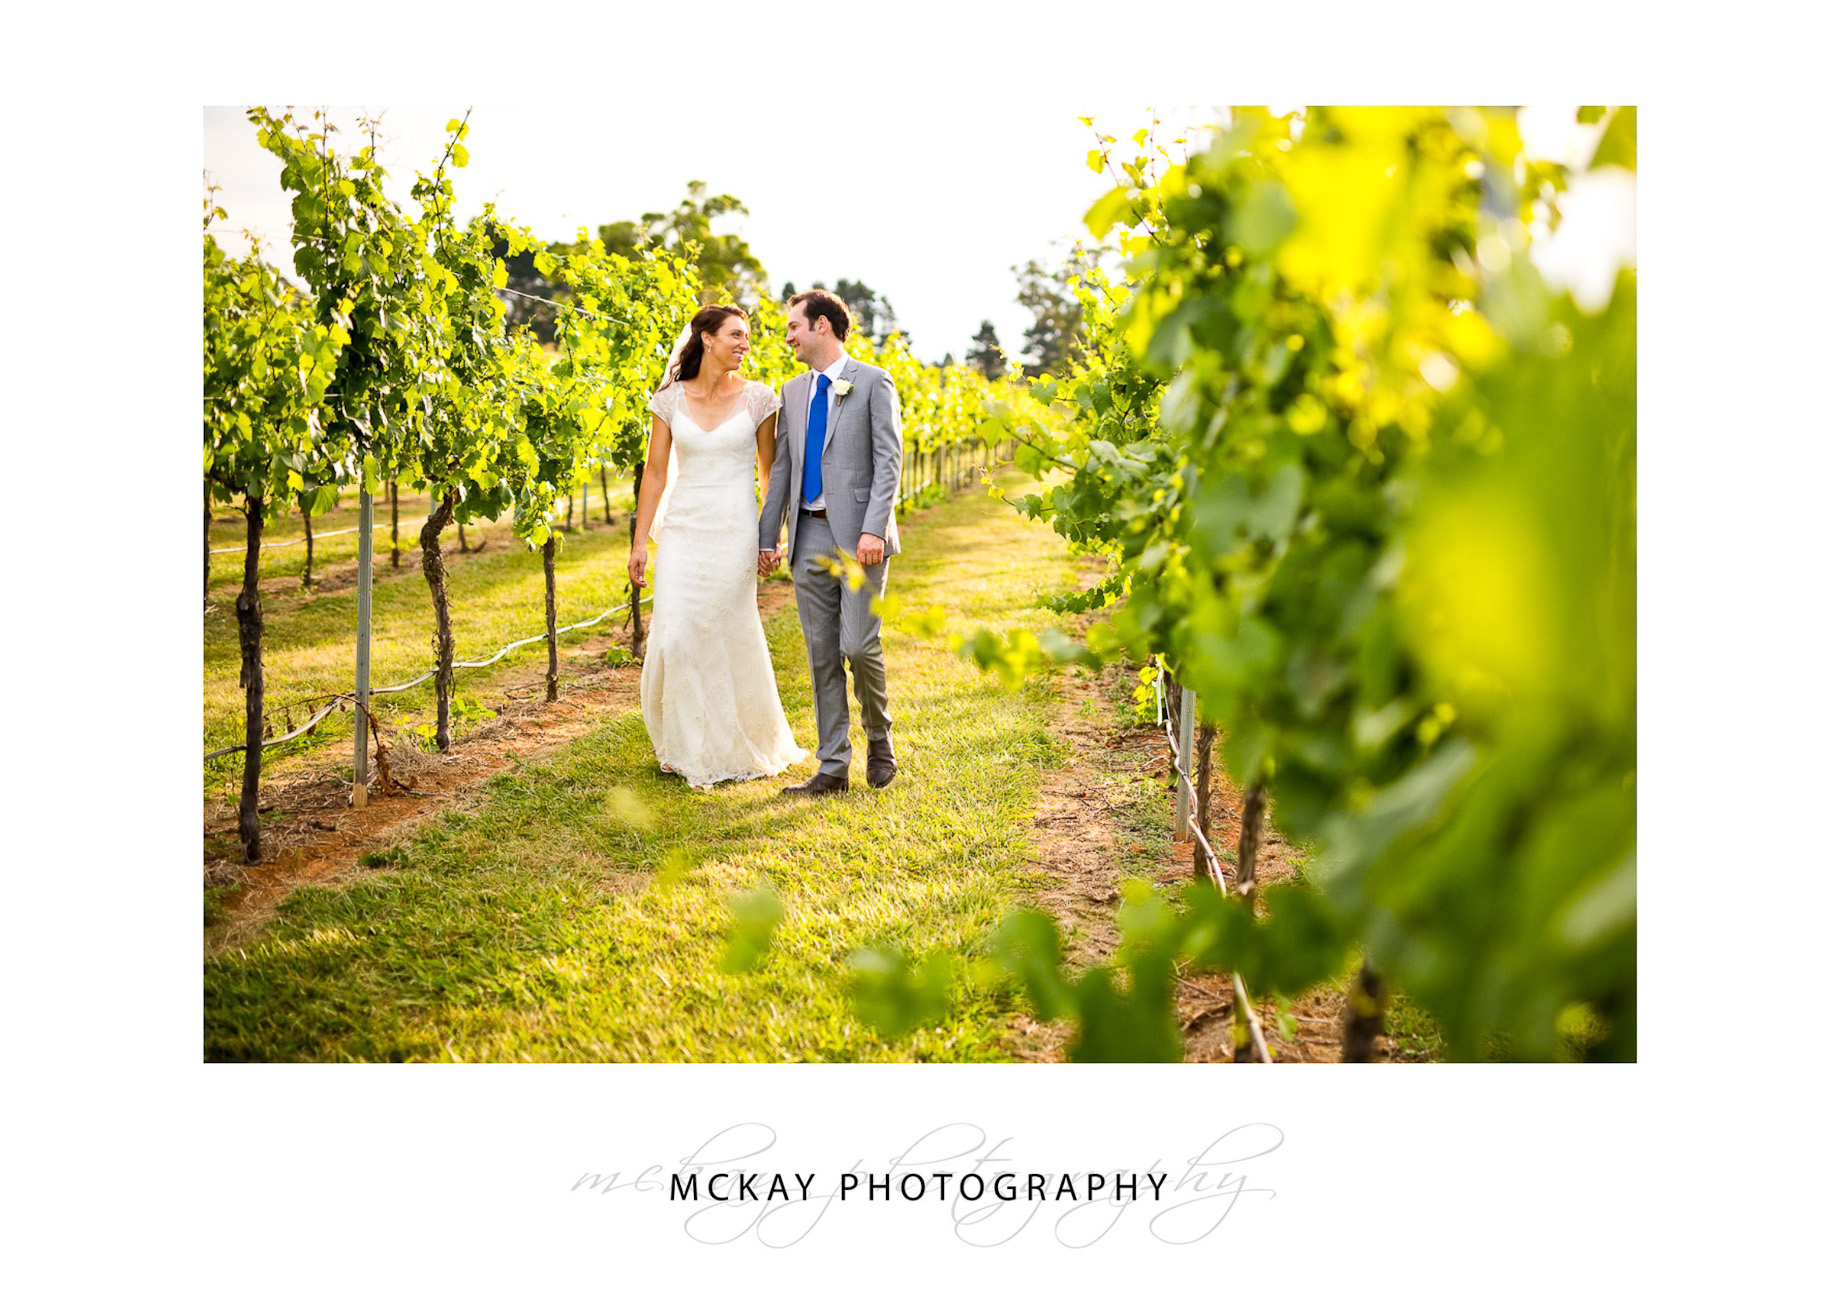 Walking in the grape vine rows at Bendooley Estate